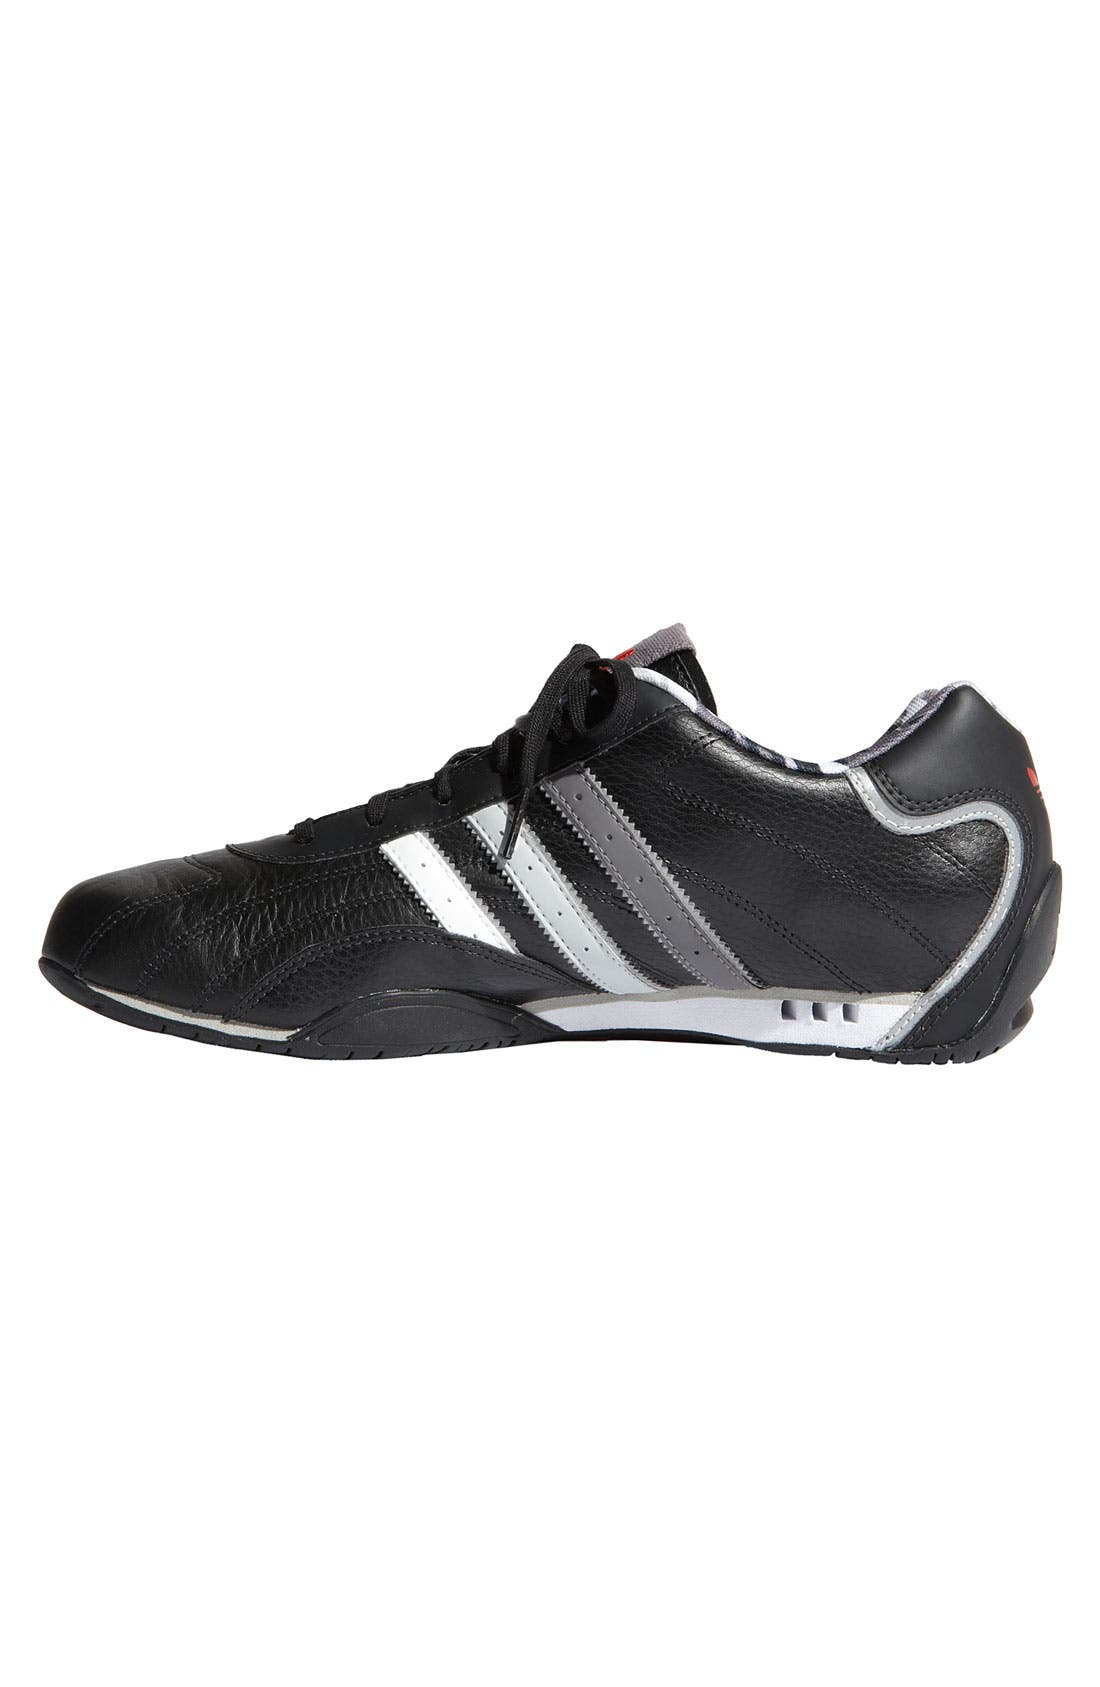 'Adi Racer Lo' Driving Shoe,                             Alternate thumbnail 3, color,                             001